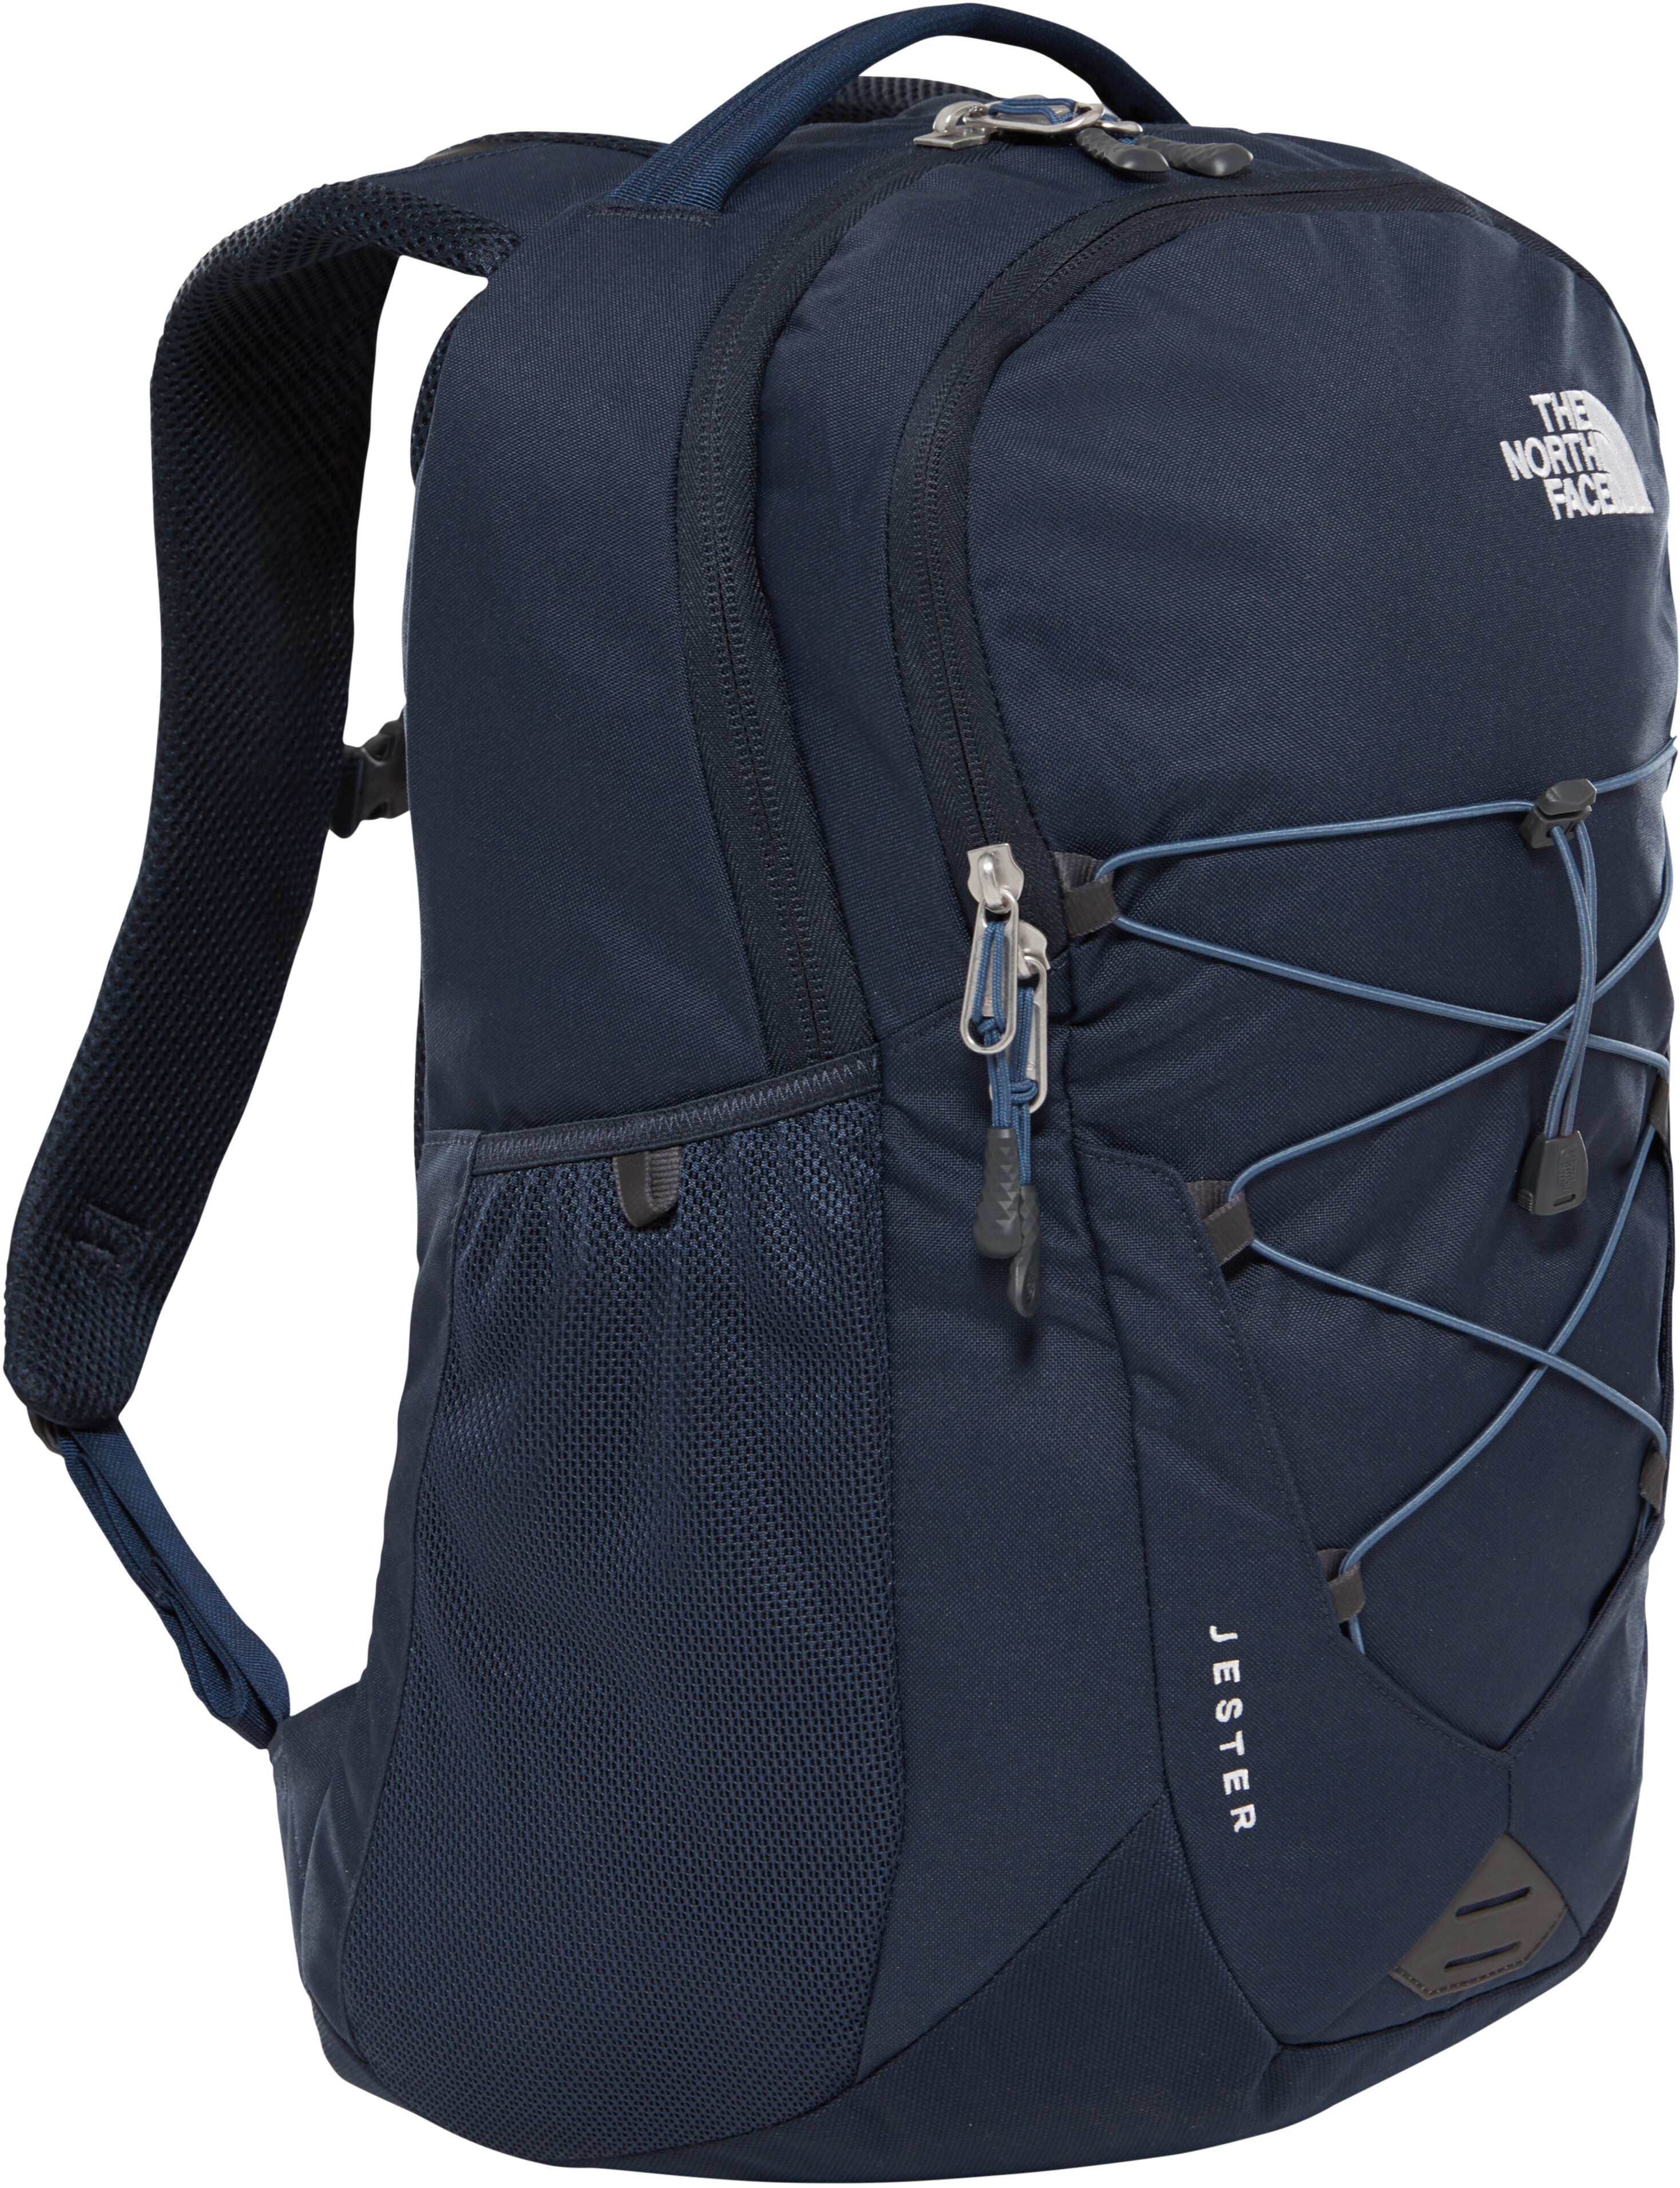 ddee8d944f The North Face Jester Sac à dos, shady blue/urban navy - Boutique de ...